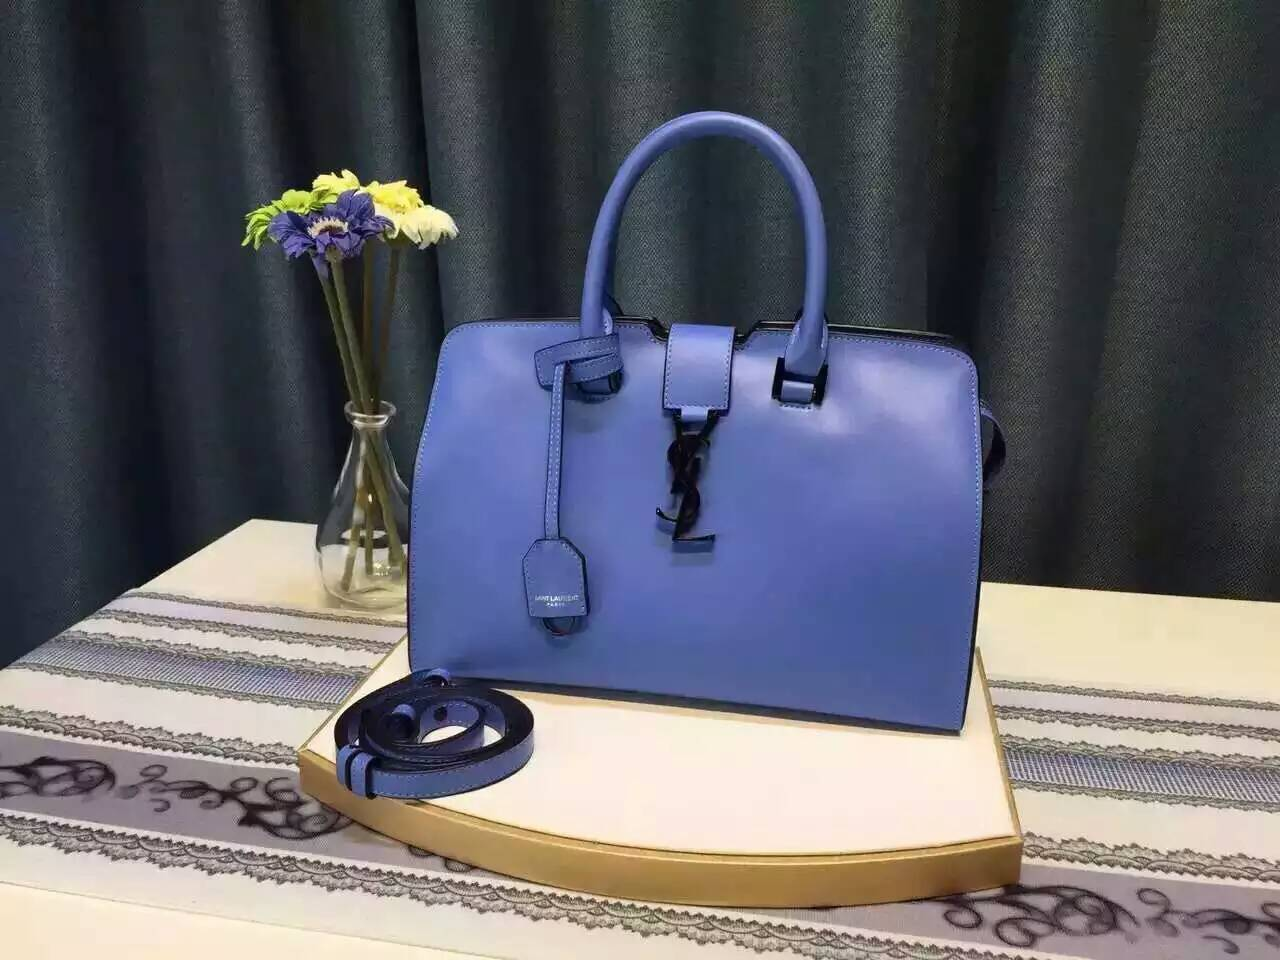 Limited Edition!2016 YSL Collection Outlet-Saint Laurent Small Monogram Cabas Bag in Royal Blue Leather